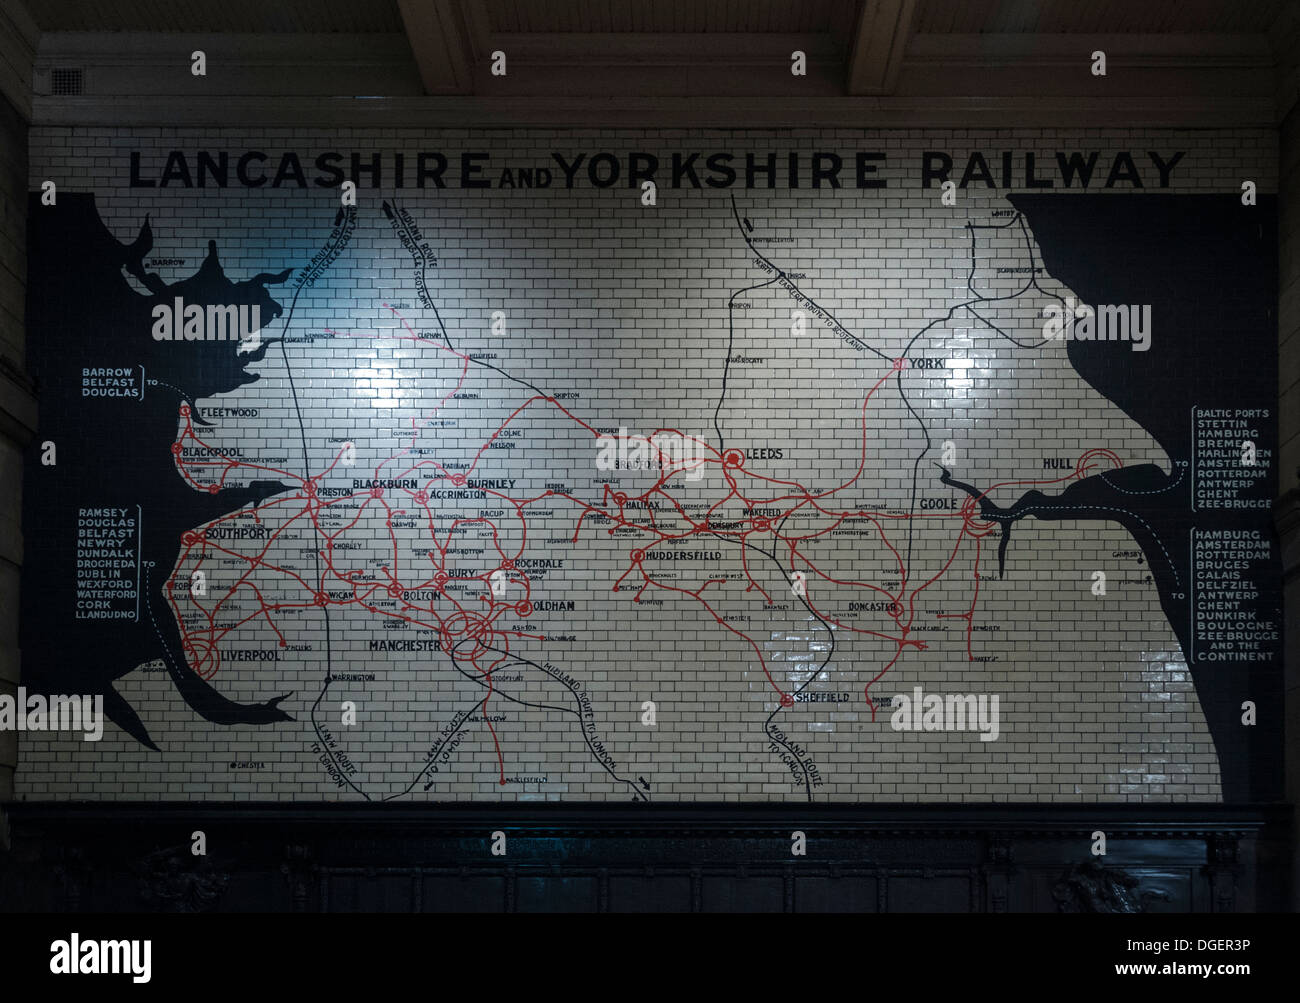 Map of the Lancashire and Yorkshire Railway routes on a wall at Victoria Station, Manchester, England, UK - Stock Image